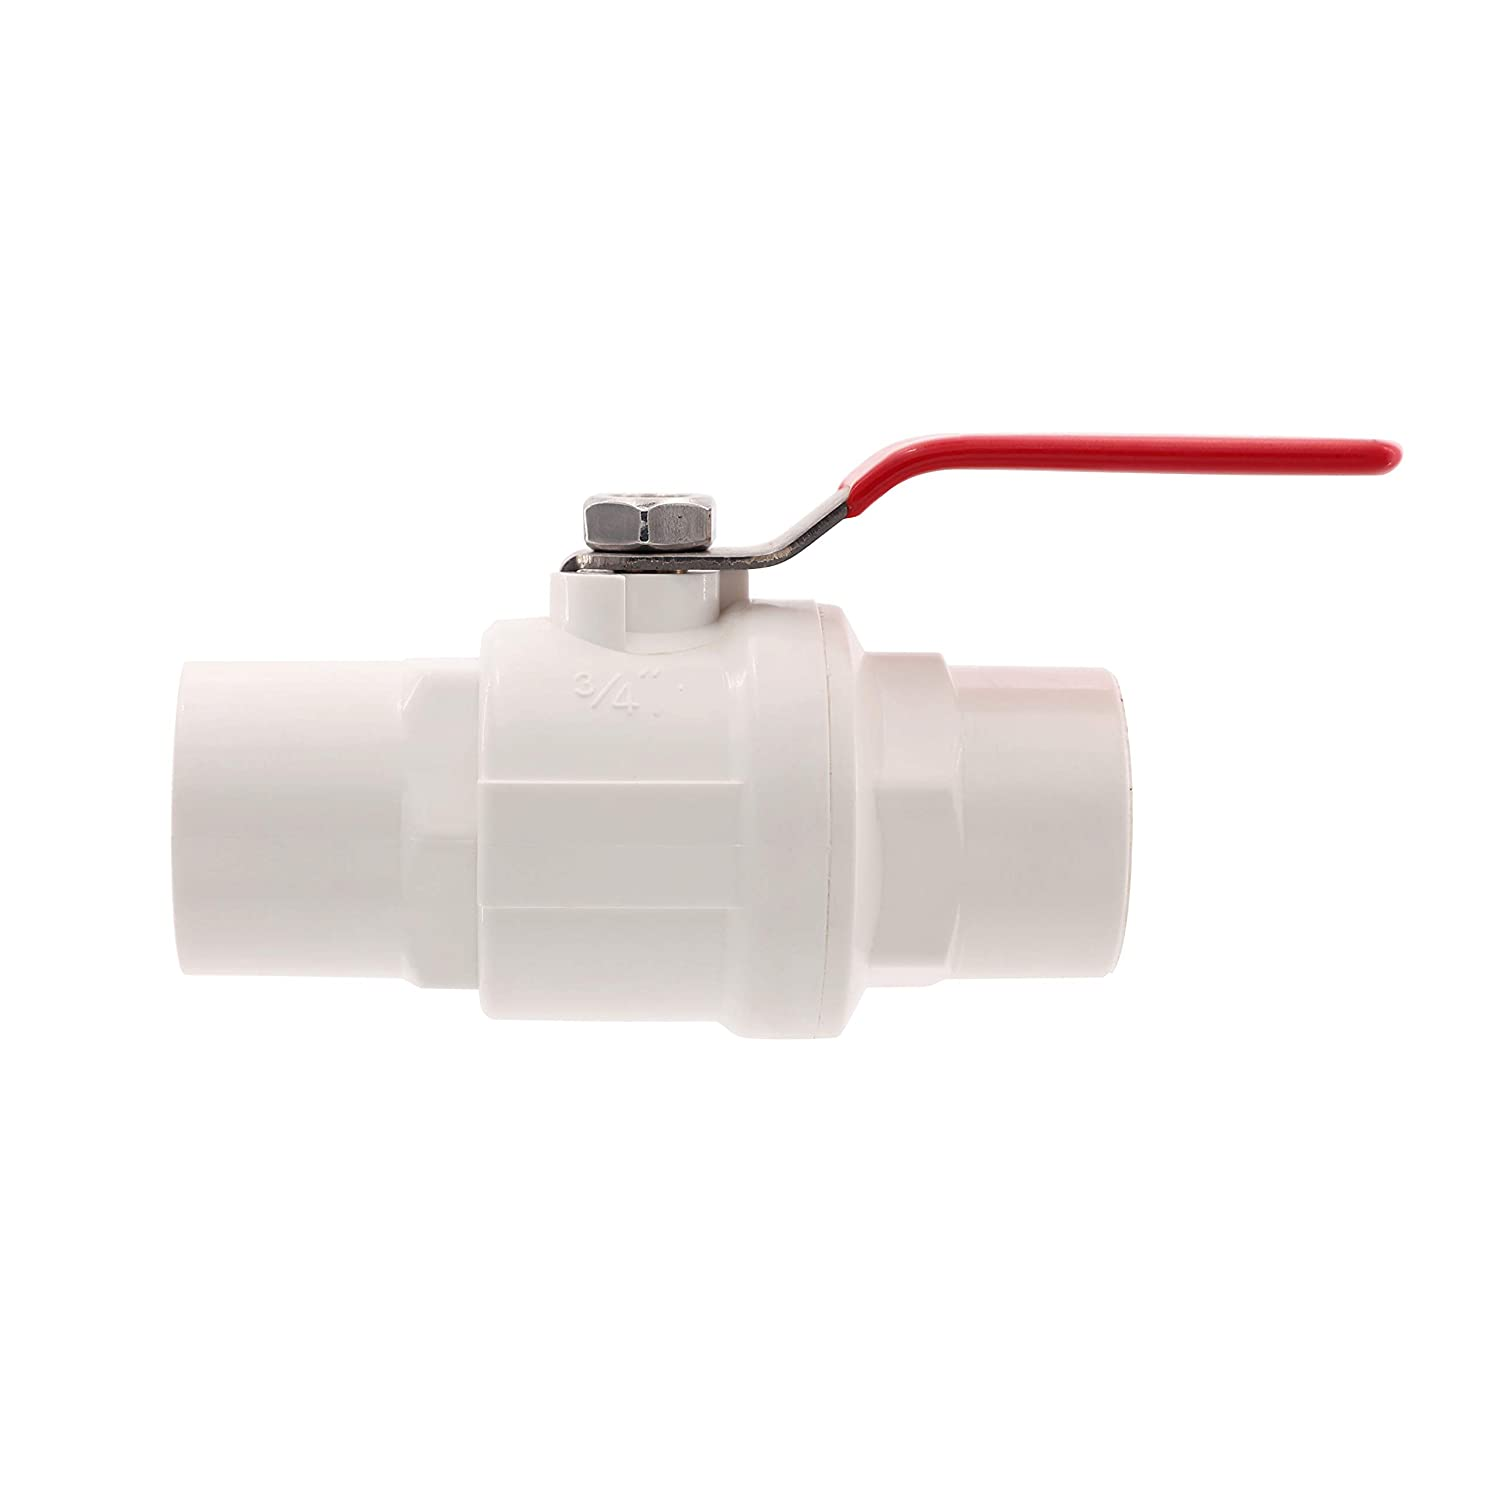 SHYOKO Inline PVC Ball Valve 1-1//2 Water Shut-Off Valves NPT Female 2-Piece Ball Valves with Stainless Steel Handle and Chromium ABS Ball Available 3//4,1,2